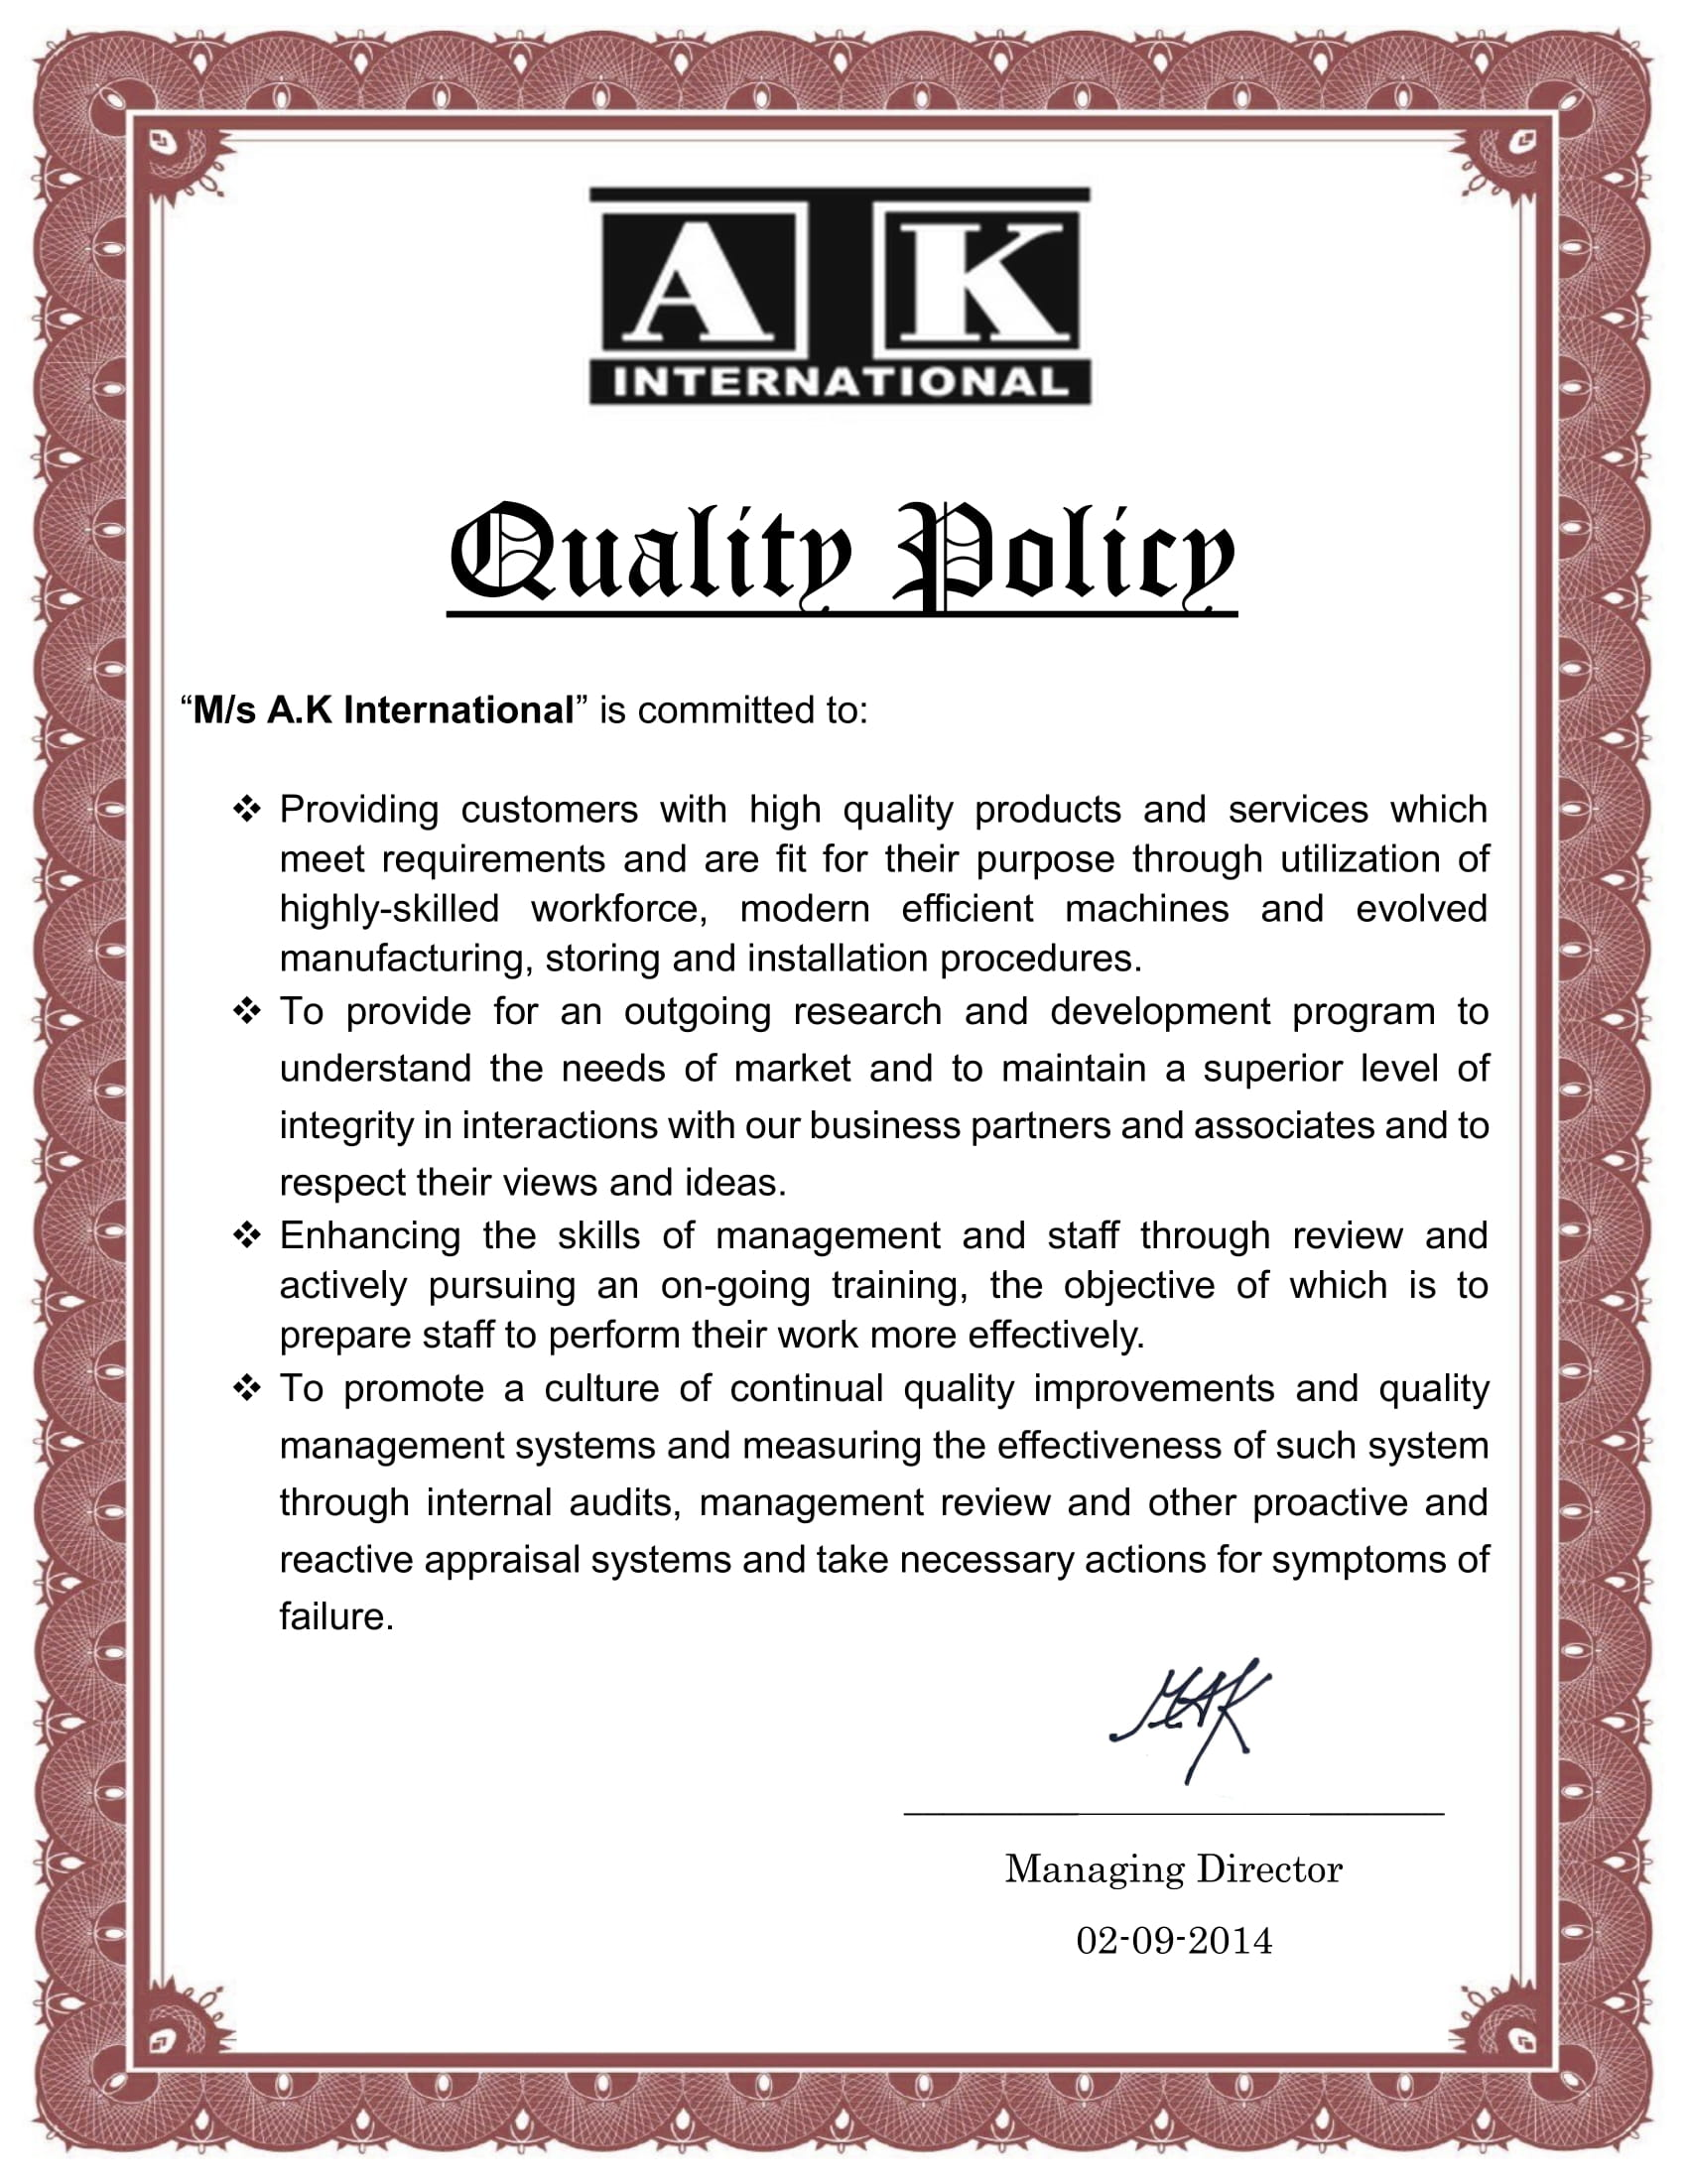 quality policy aki-1